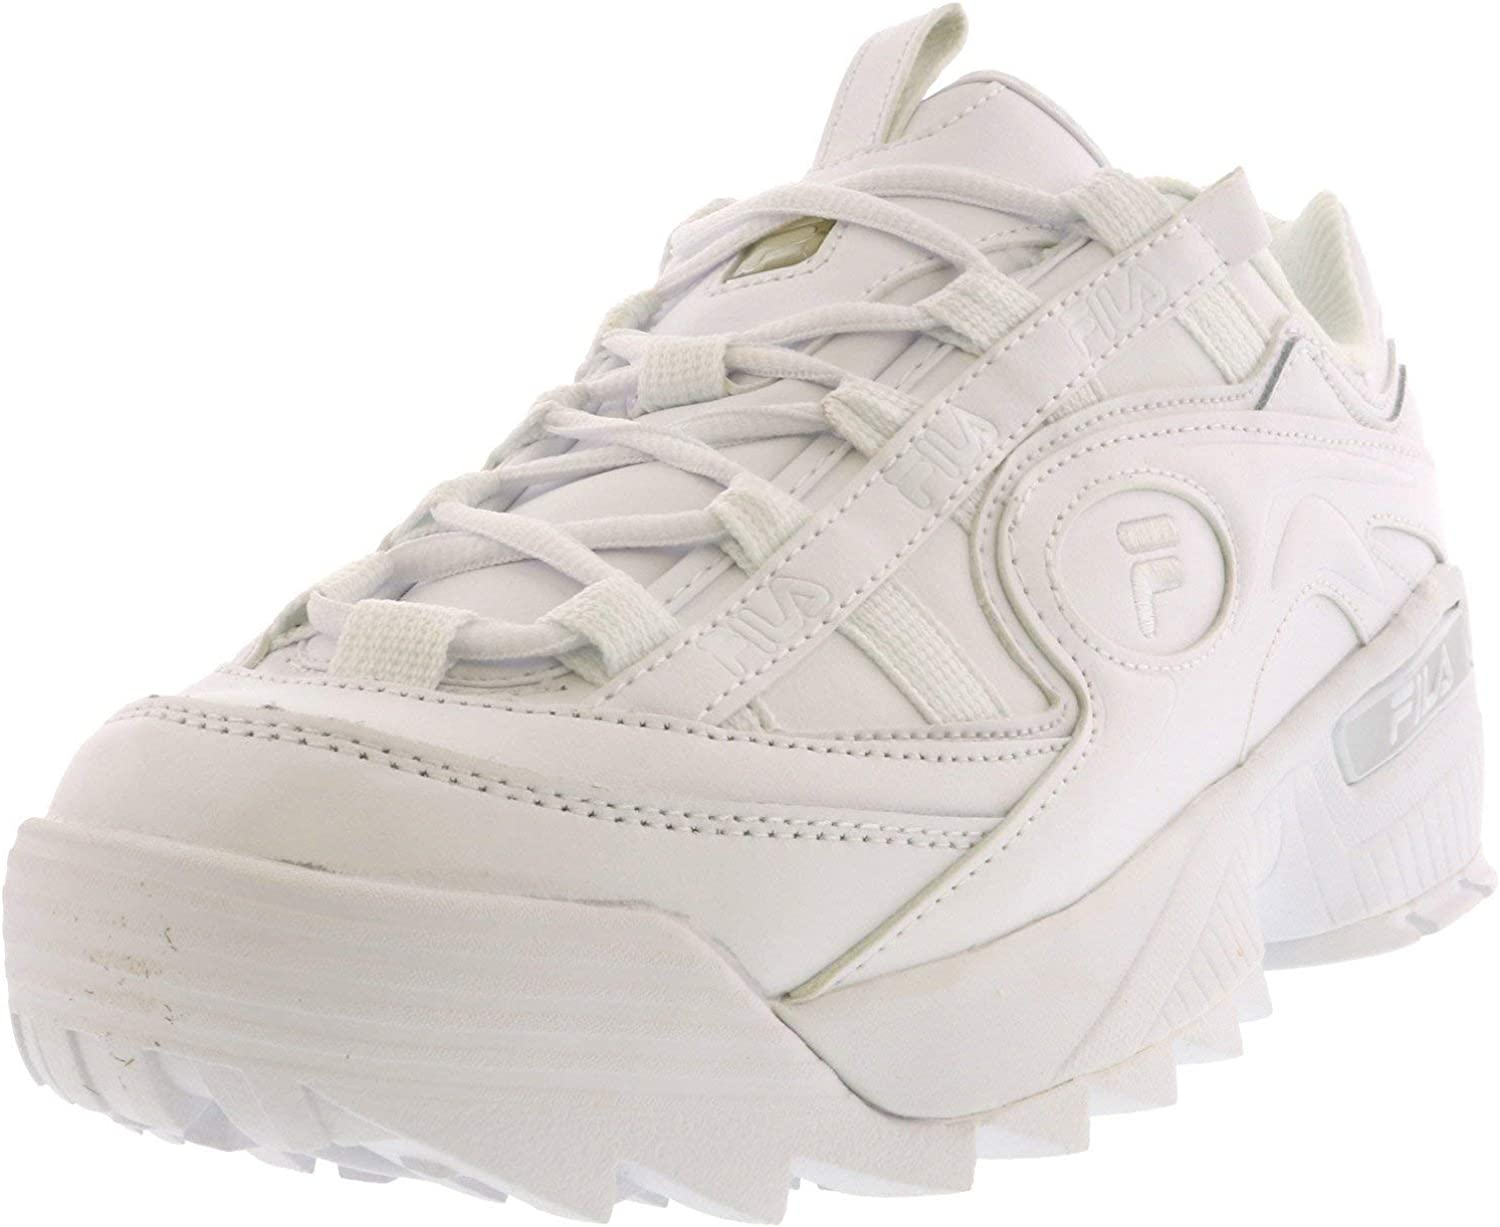 OFFicial mail order Fila Mens Sneaker Max 73% OFF D-Formation